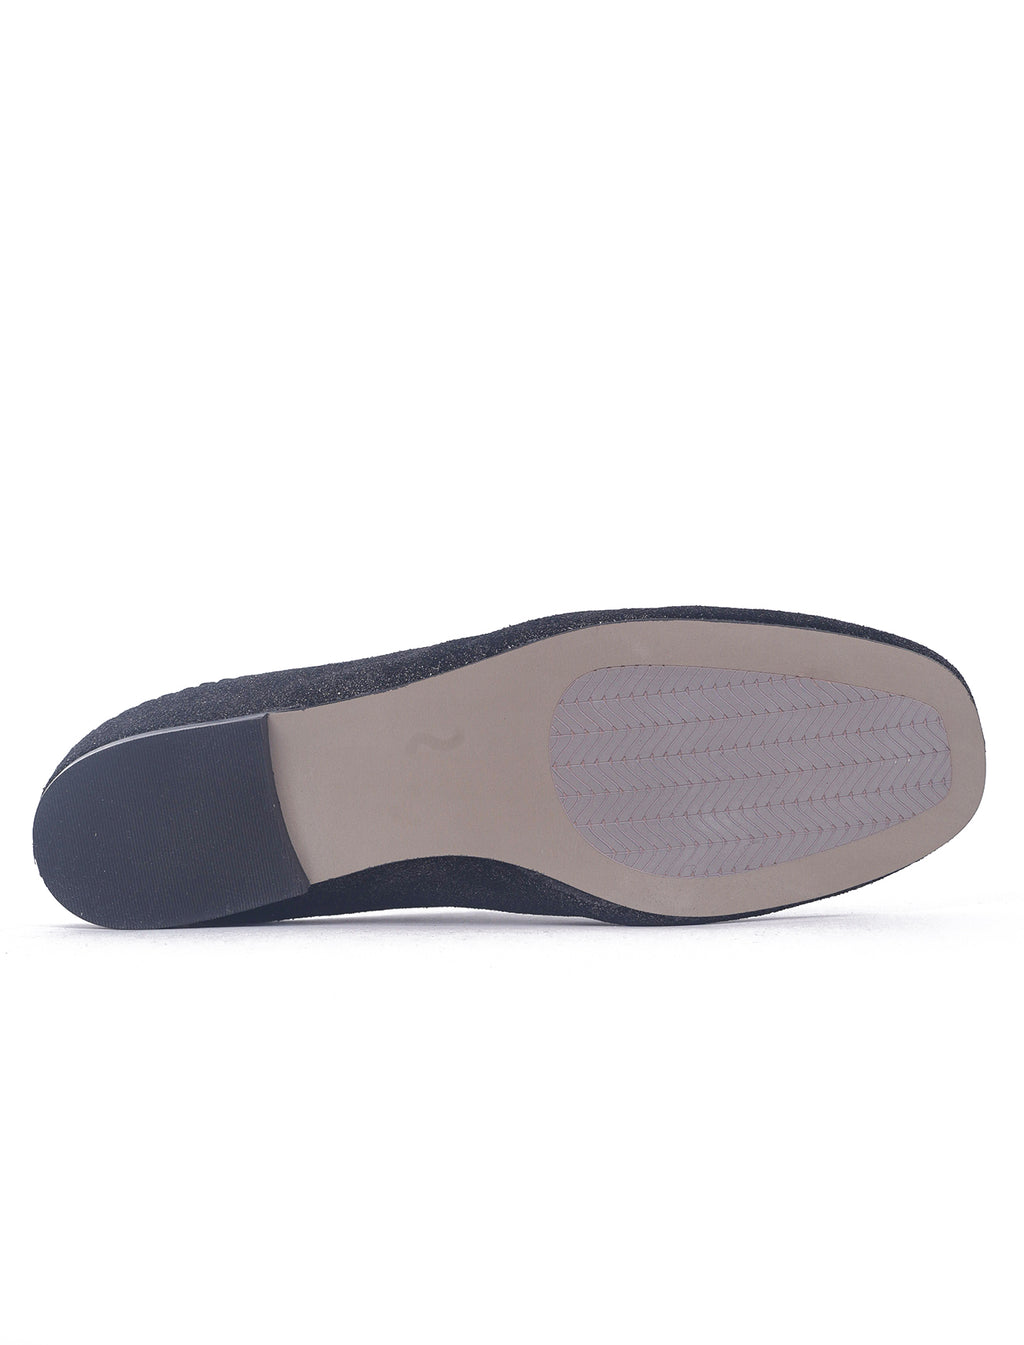 Naked Feet Fondo Flats, Pewter